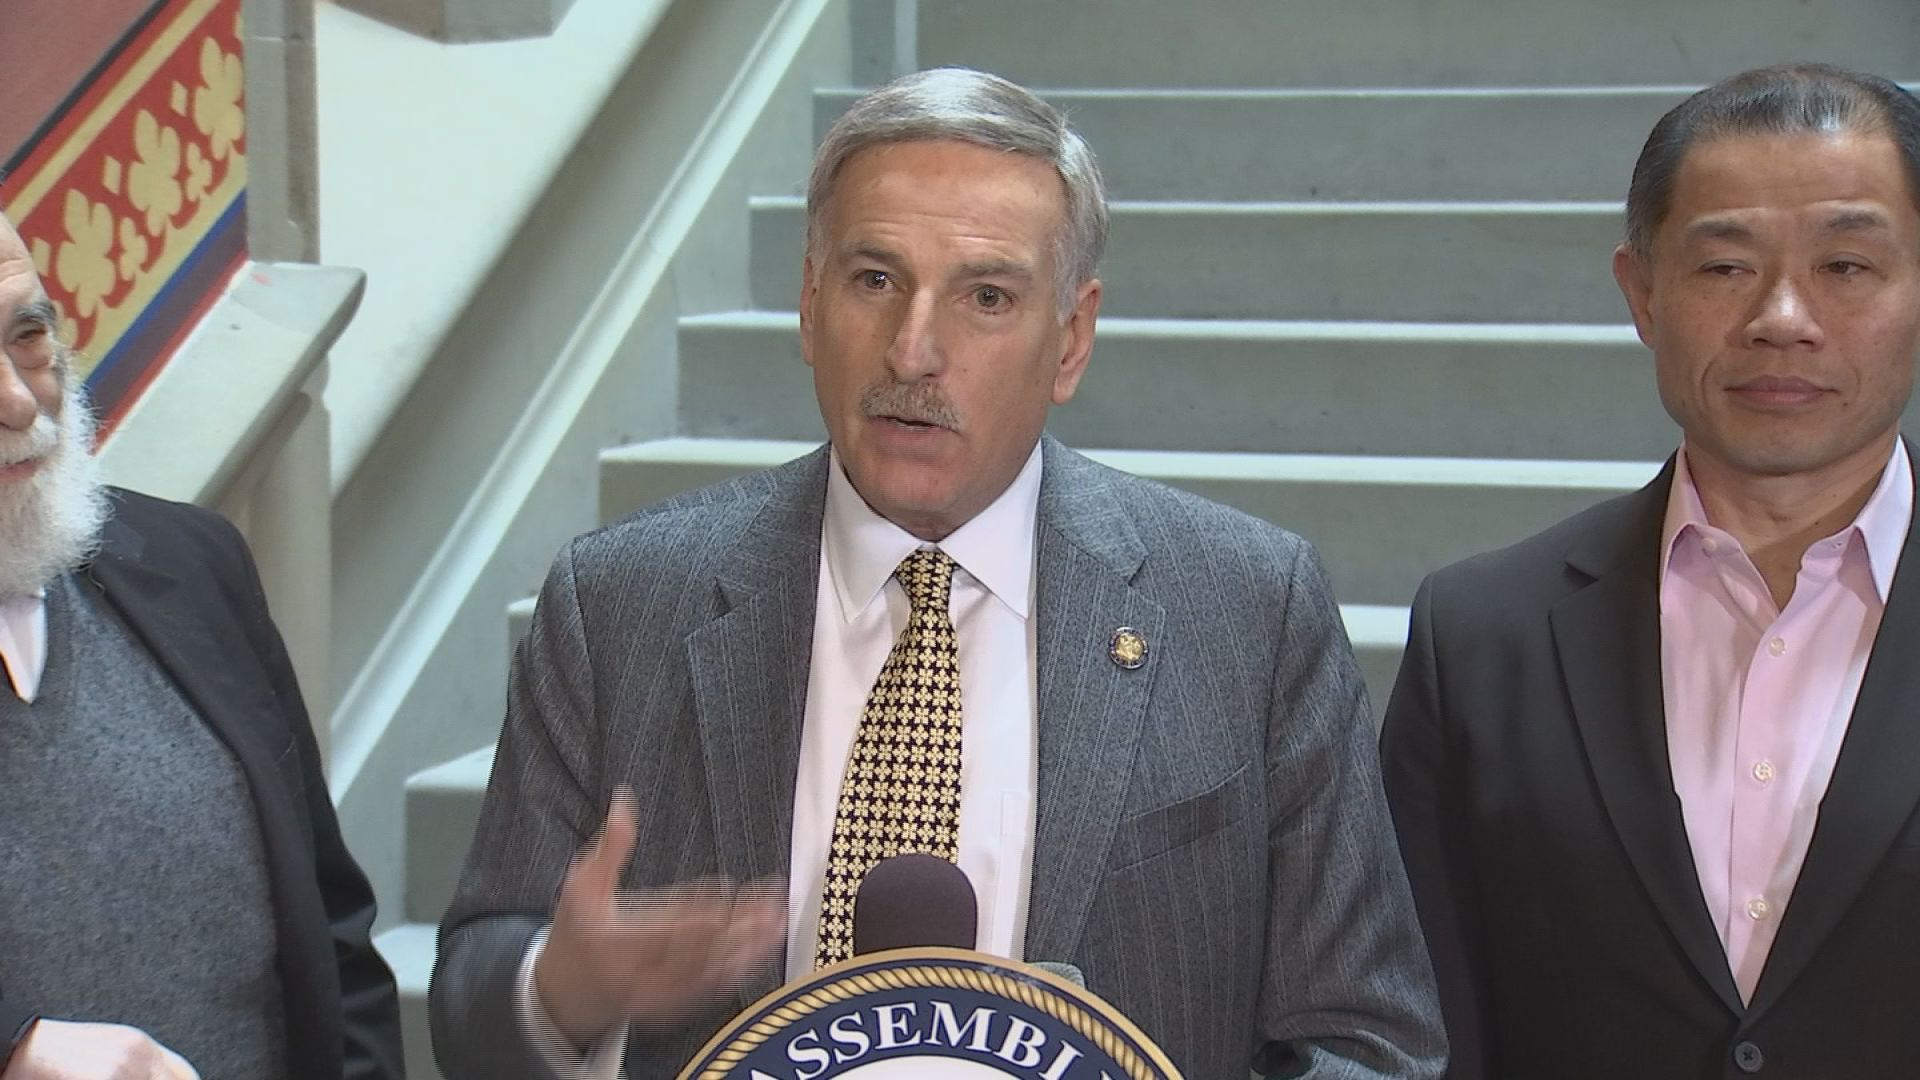 Weprin: Stop Discrimination Against Religious Attire